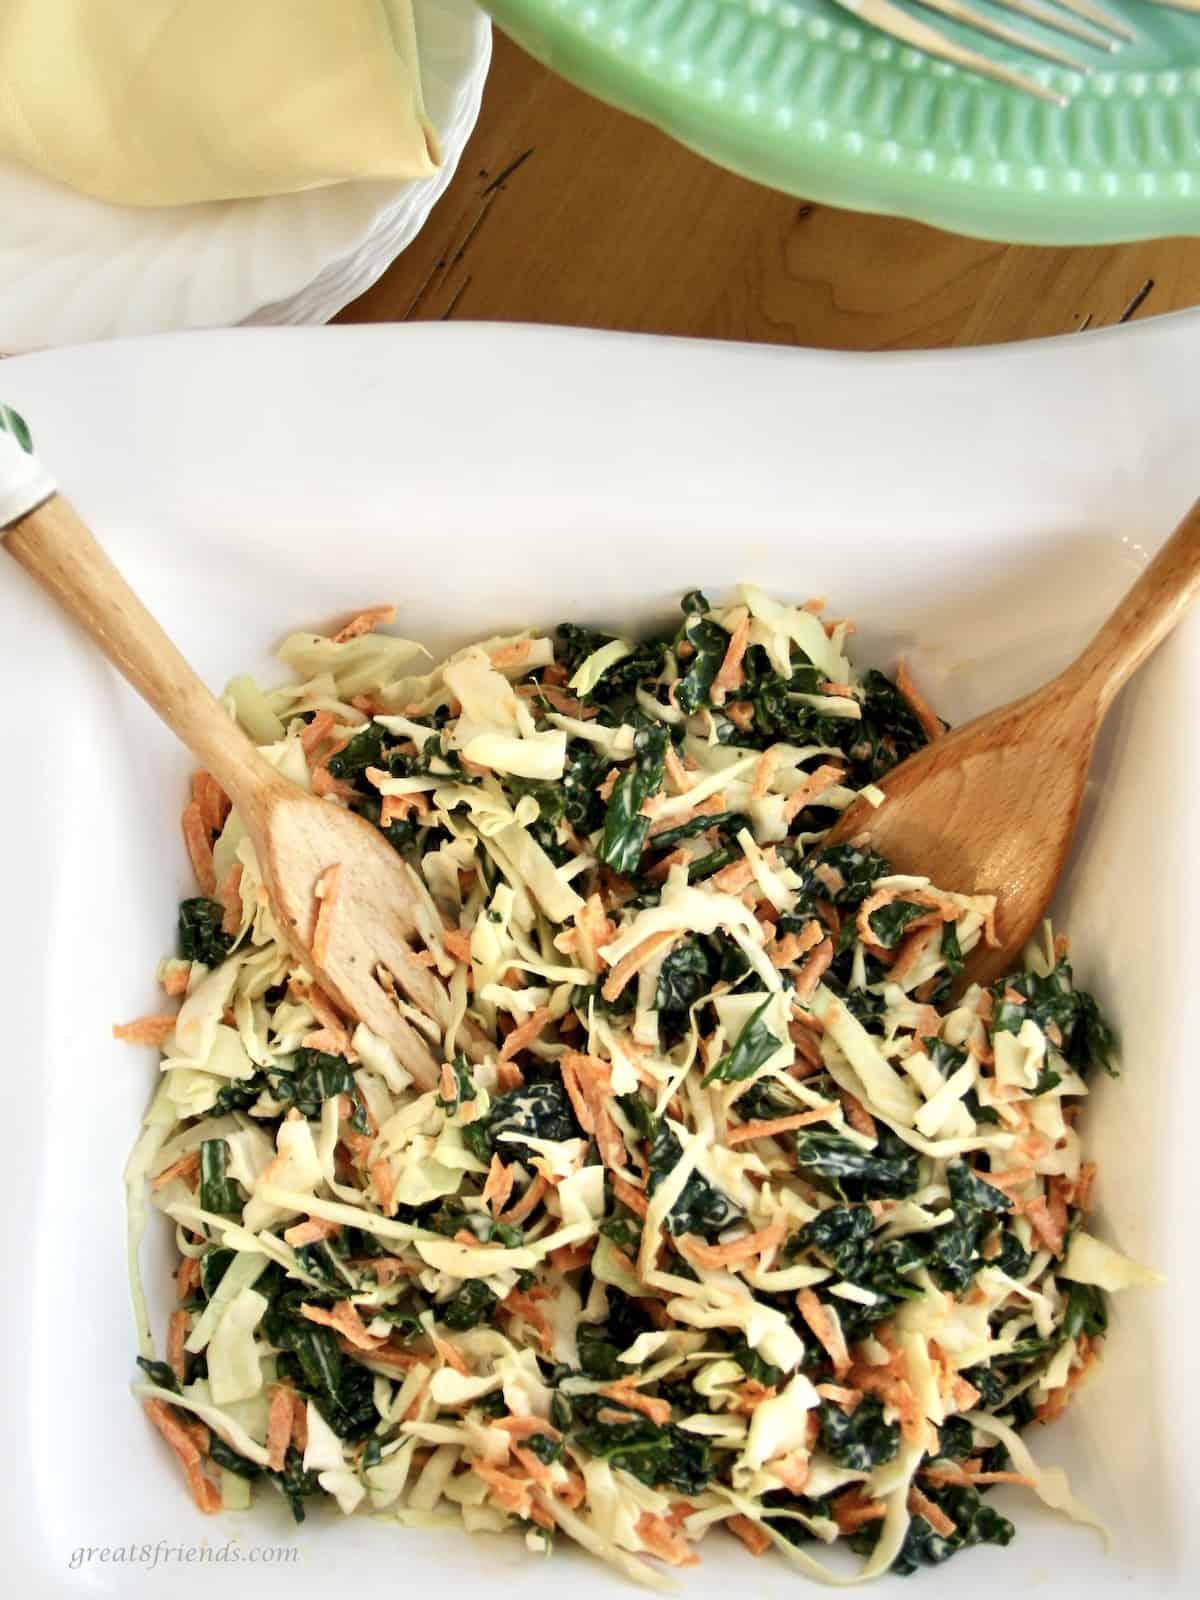 Kale slaw salad in a white square bowl with a wooden salad serving spoon and fork.